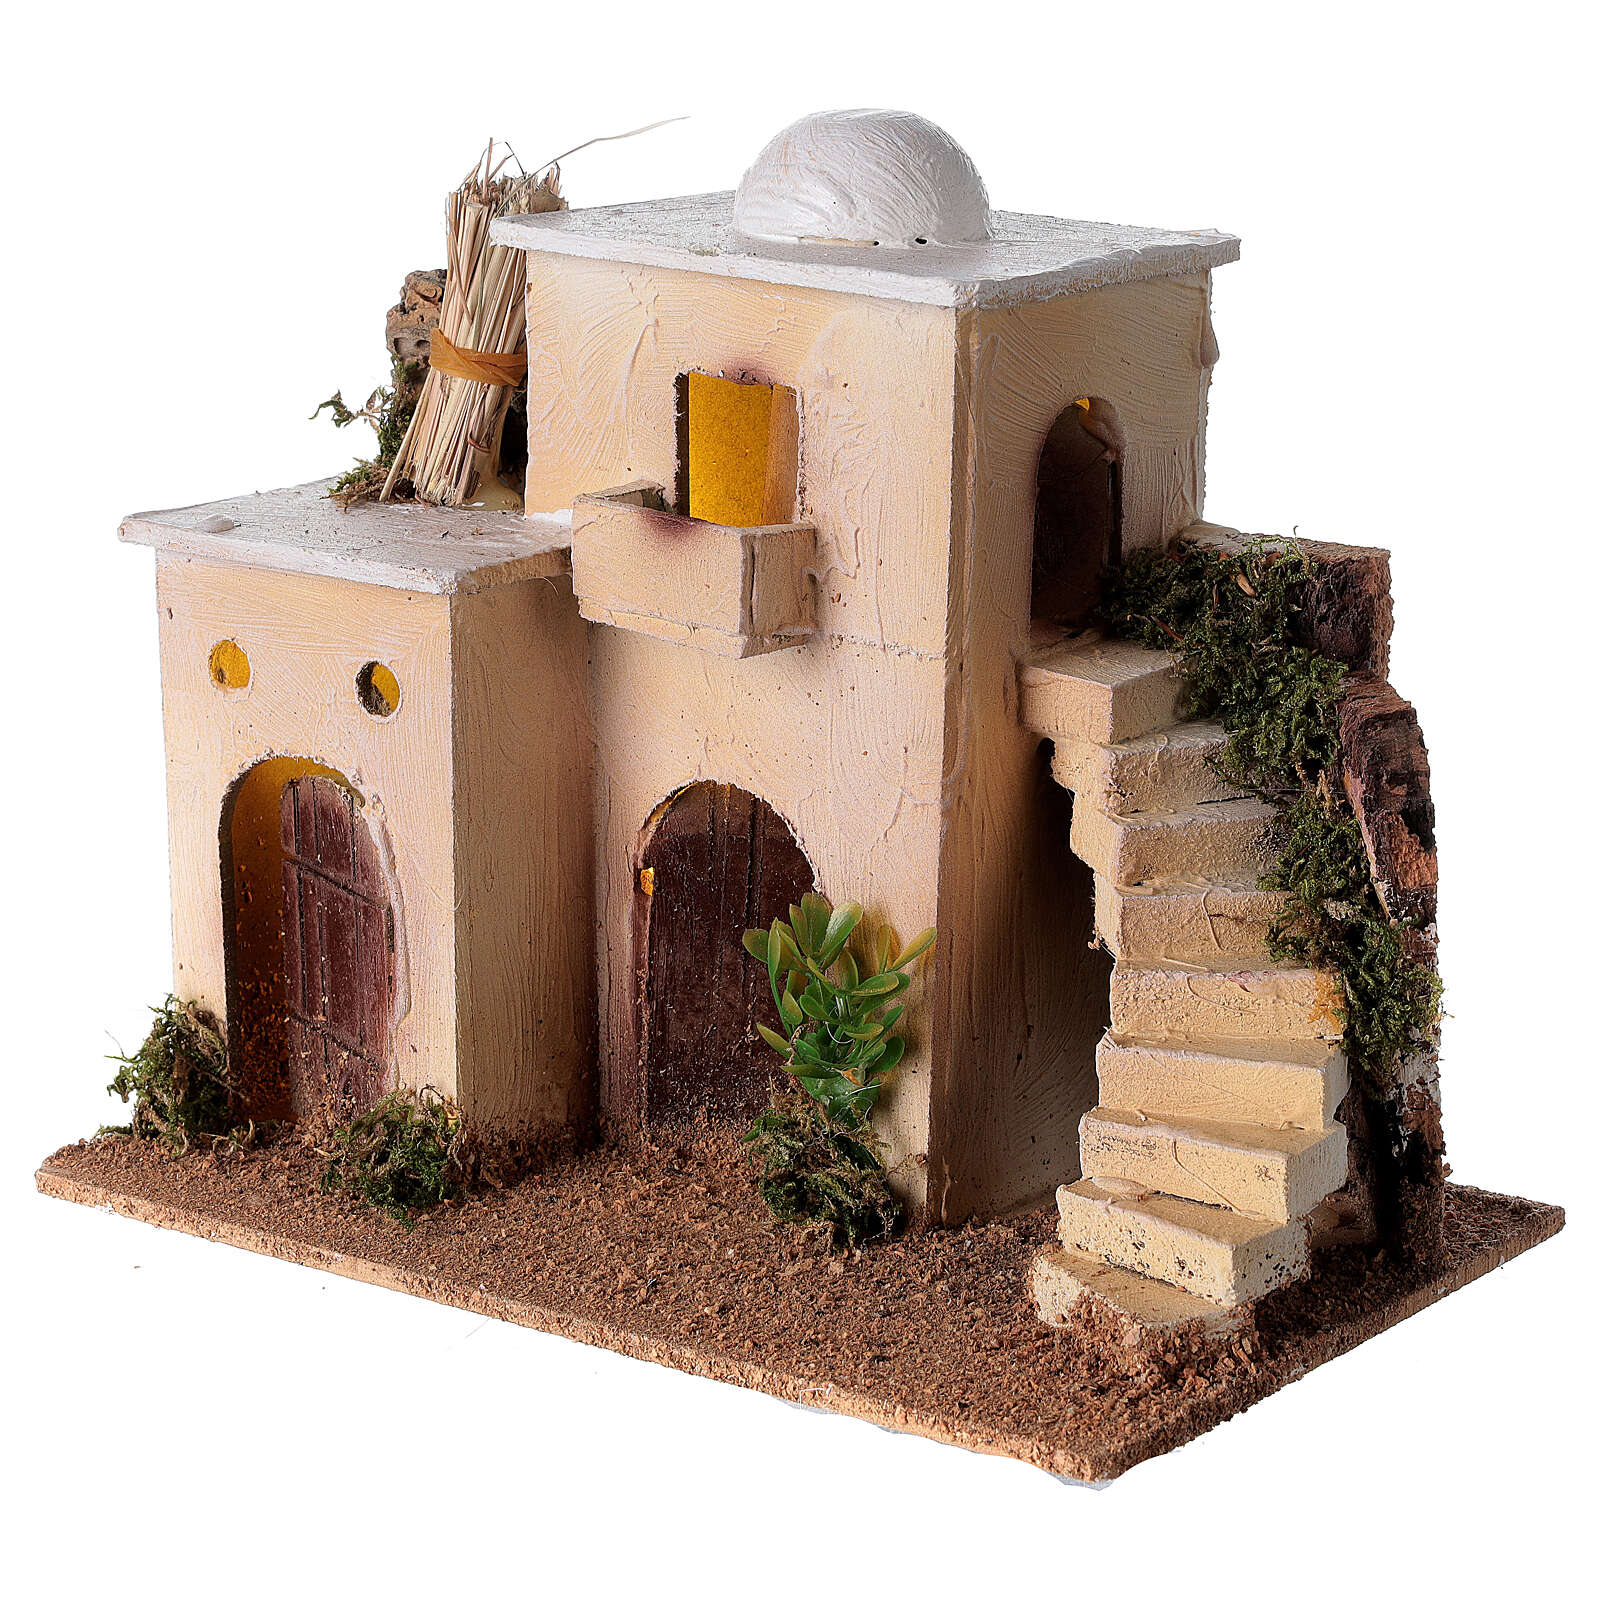 Minaret with stairs 20x25x15 cm for Nativity Scene with 6-8 cm figurines 4